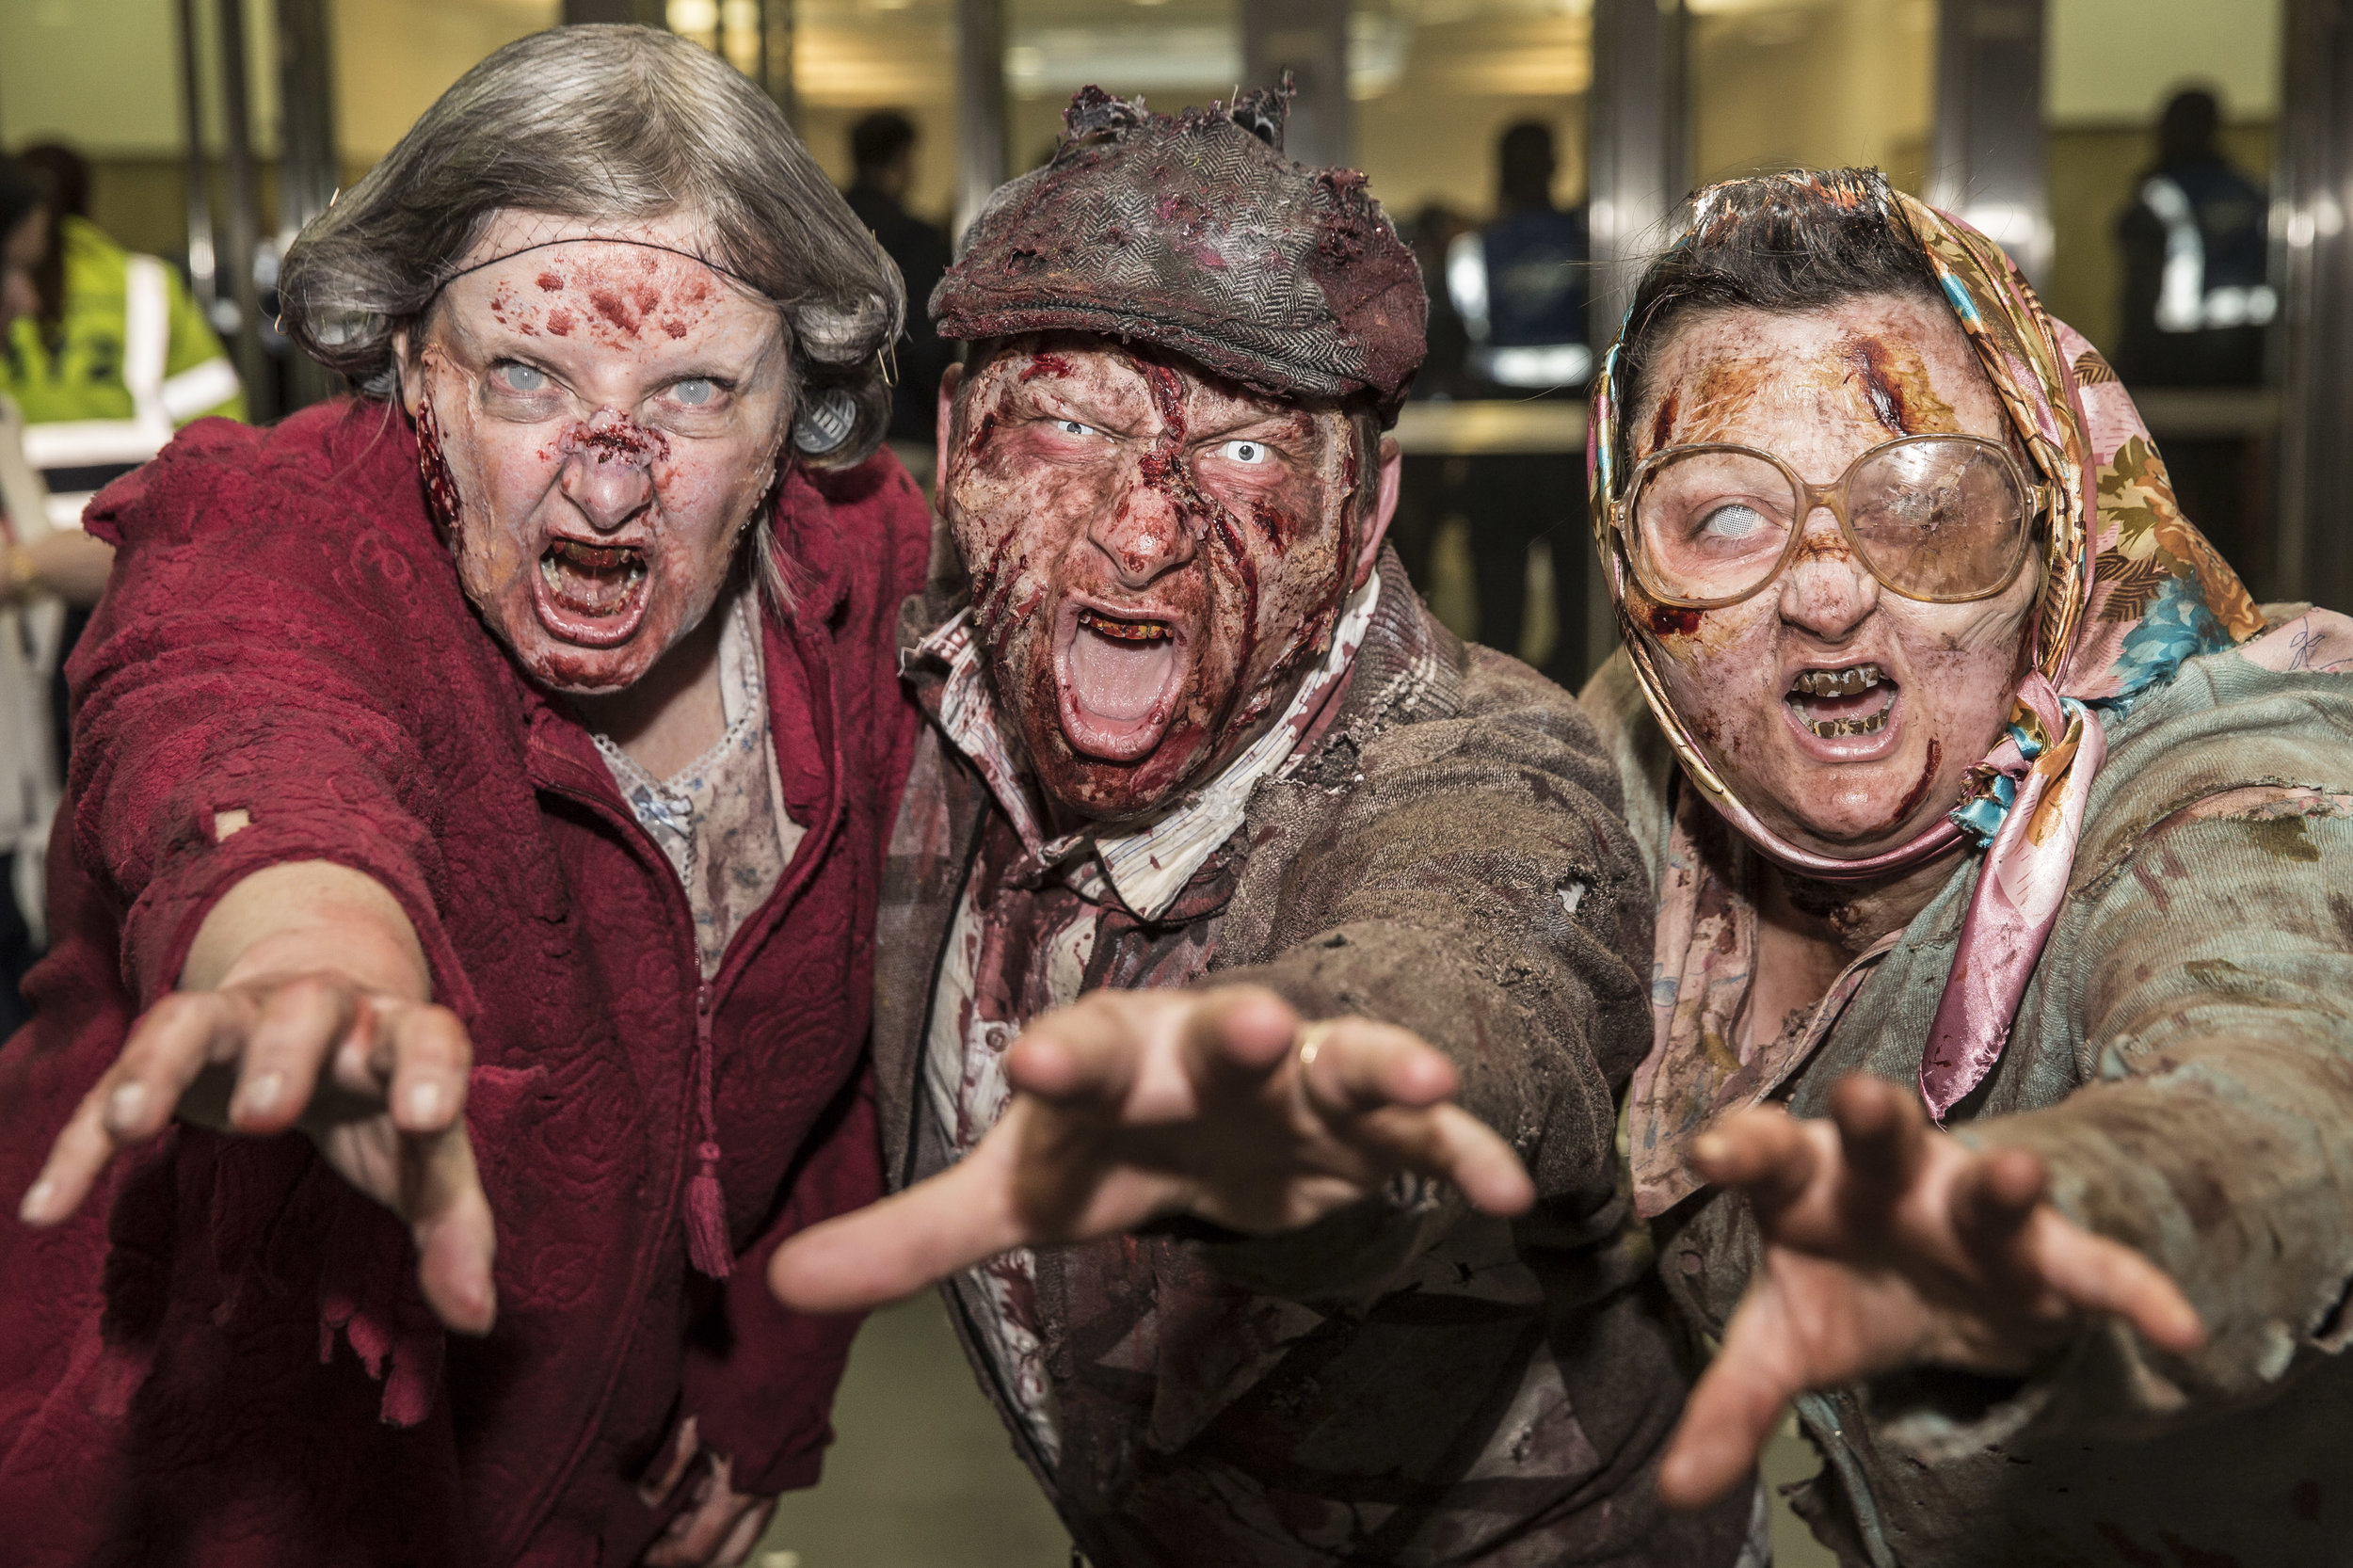 The Zombie hoard invades the London Olympia ( Z Walkers )